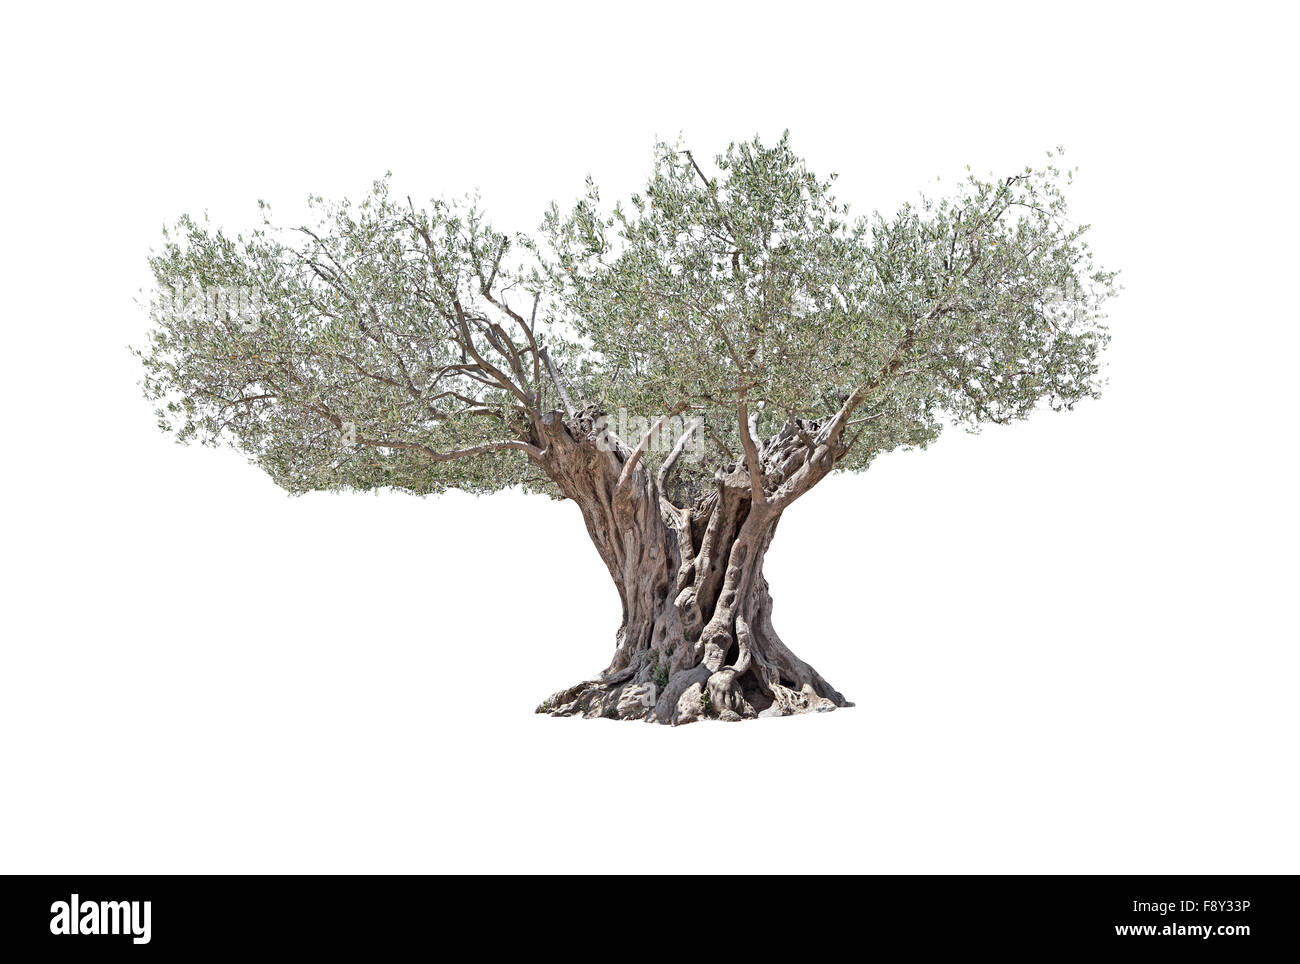 Secular Olive Tree with large and textured trunk on white background. - Stock Image